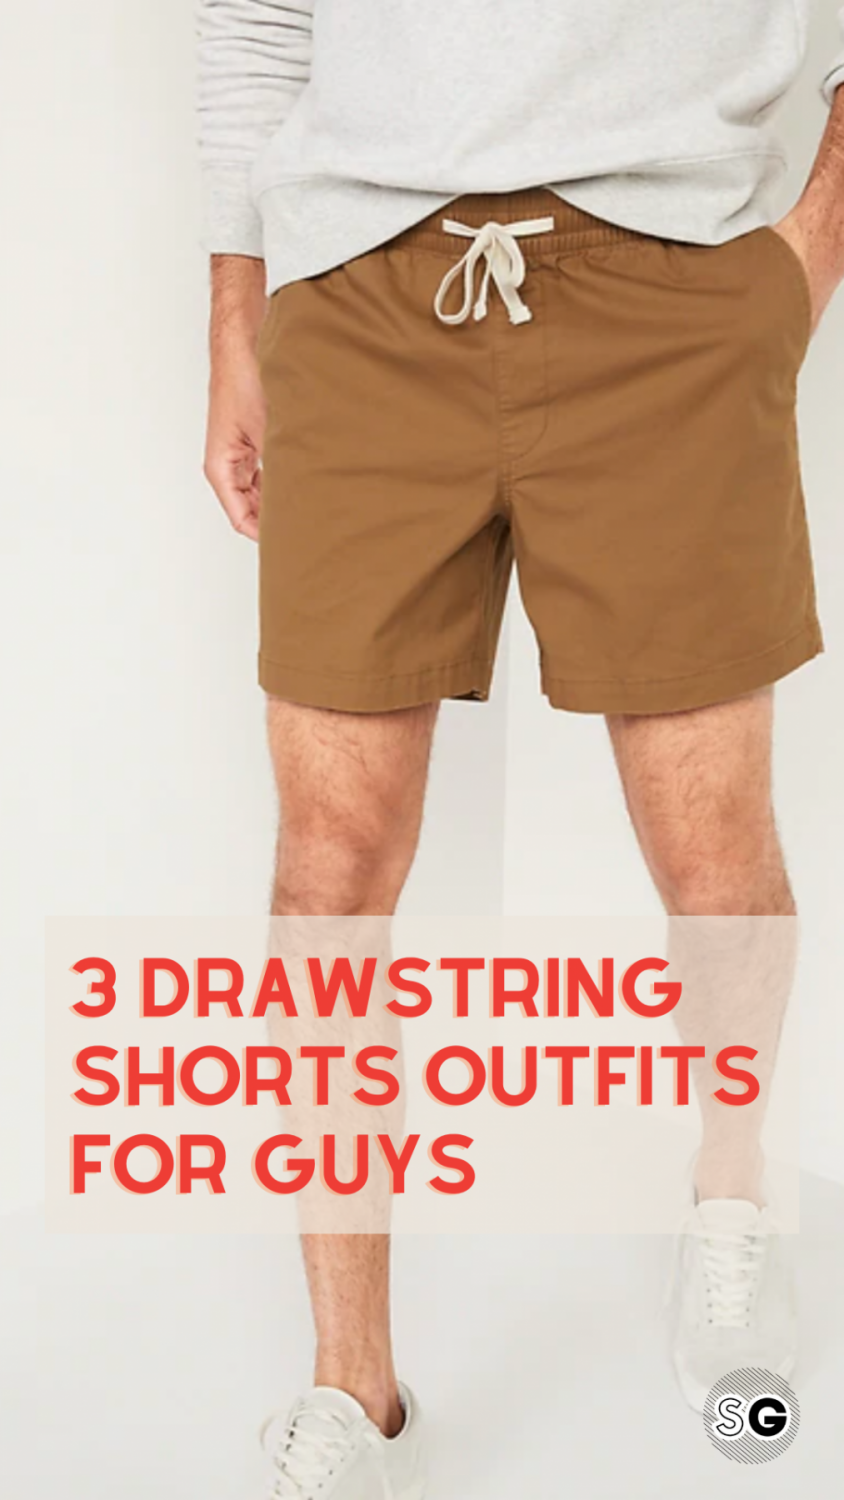 2021 drawstring shorts outfits for guys